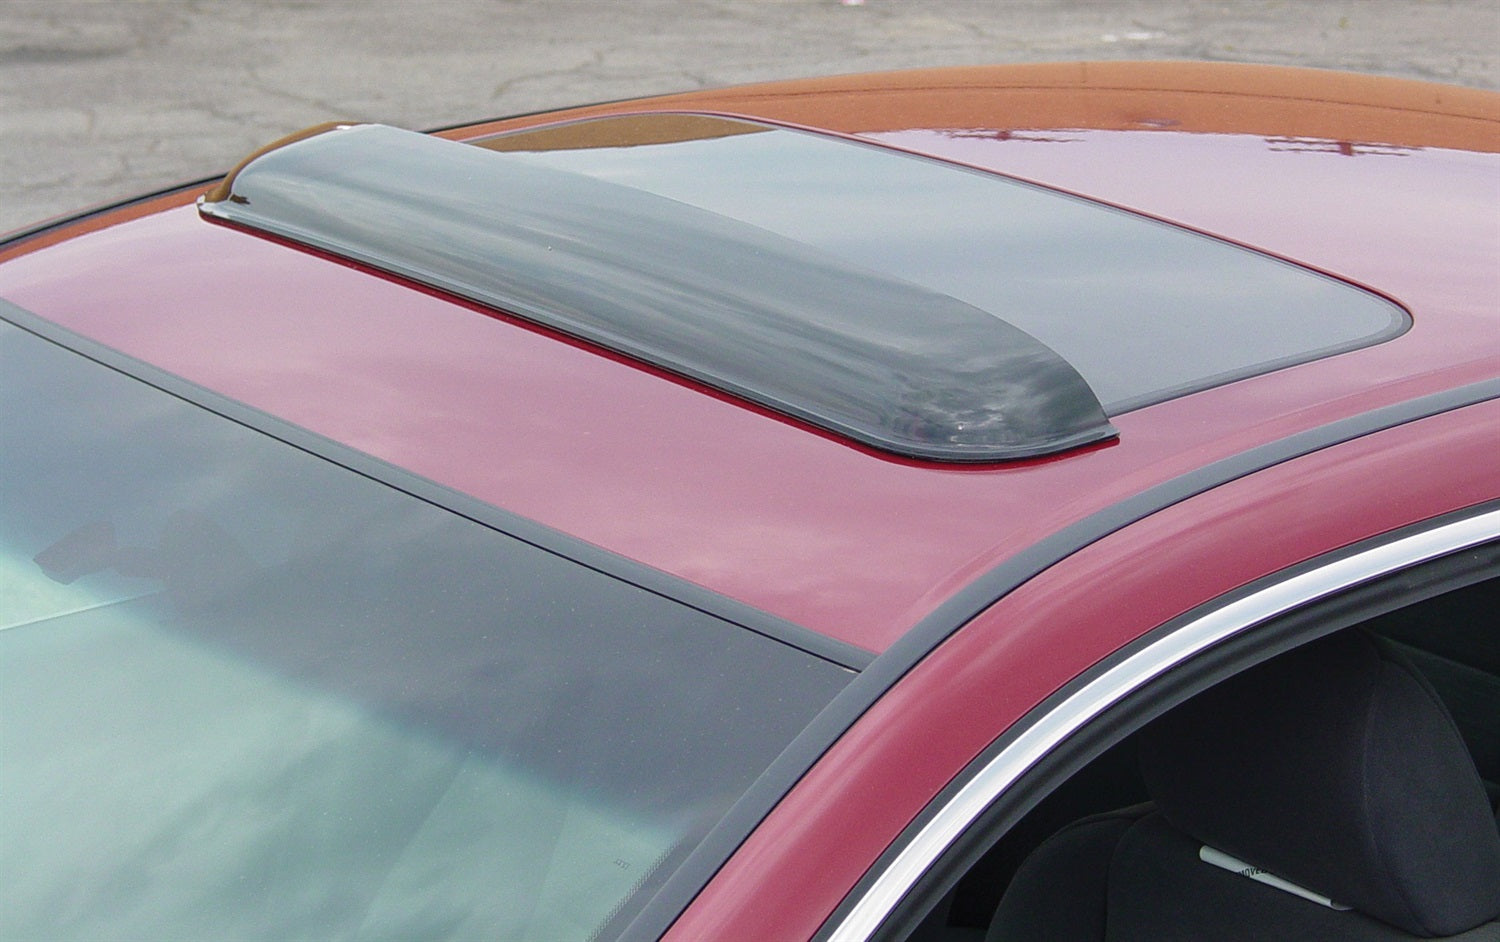 1990 Acura Integra Sunroof Wind Deflector